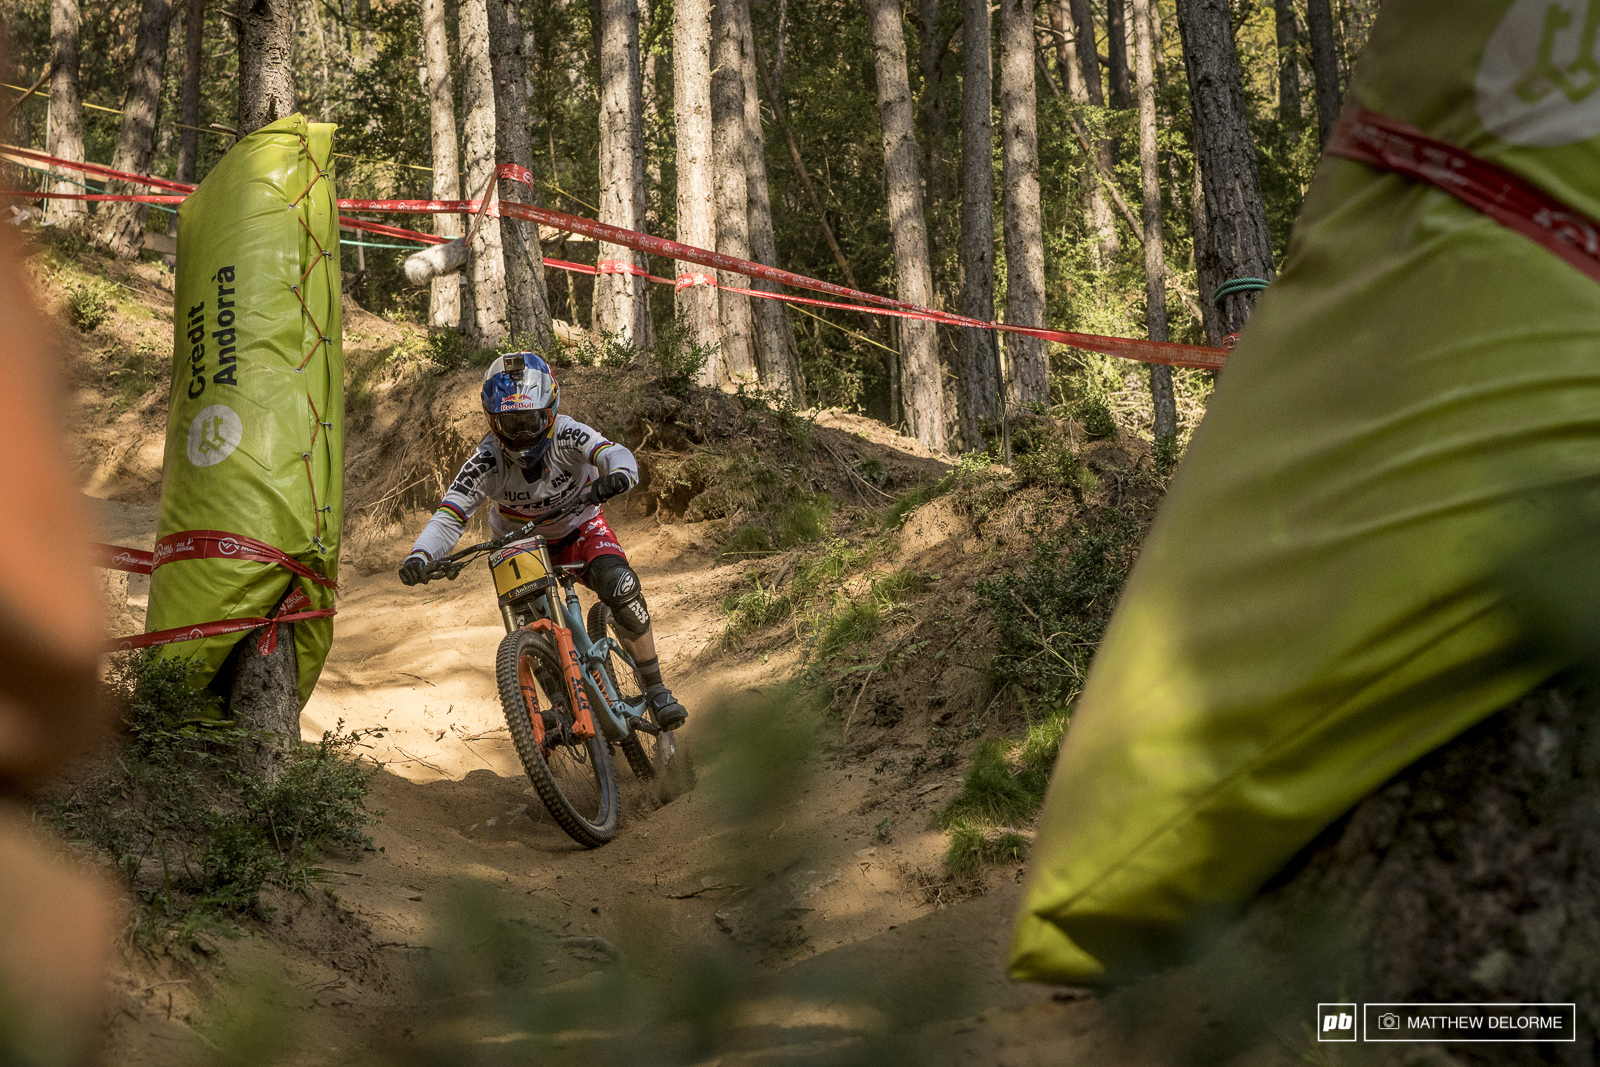 Rachel Atherton proved once again that she is just leaps and bounds ahead of the competition.